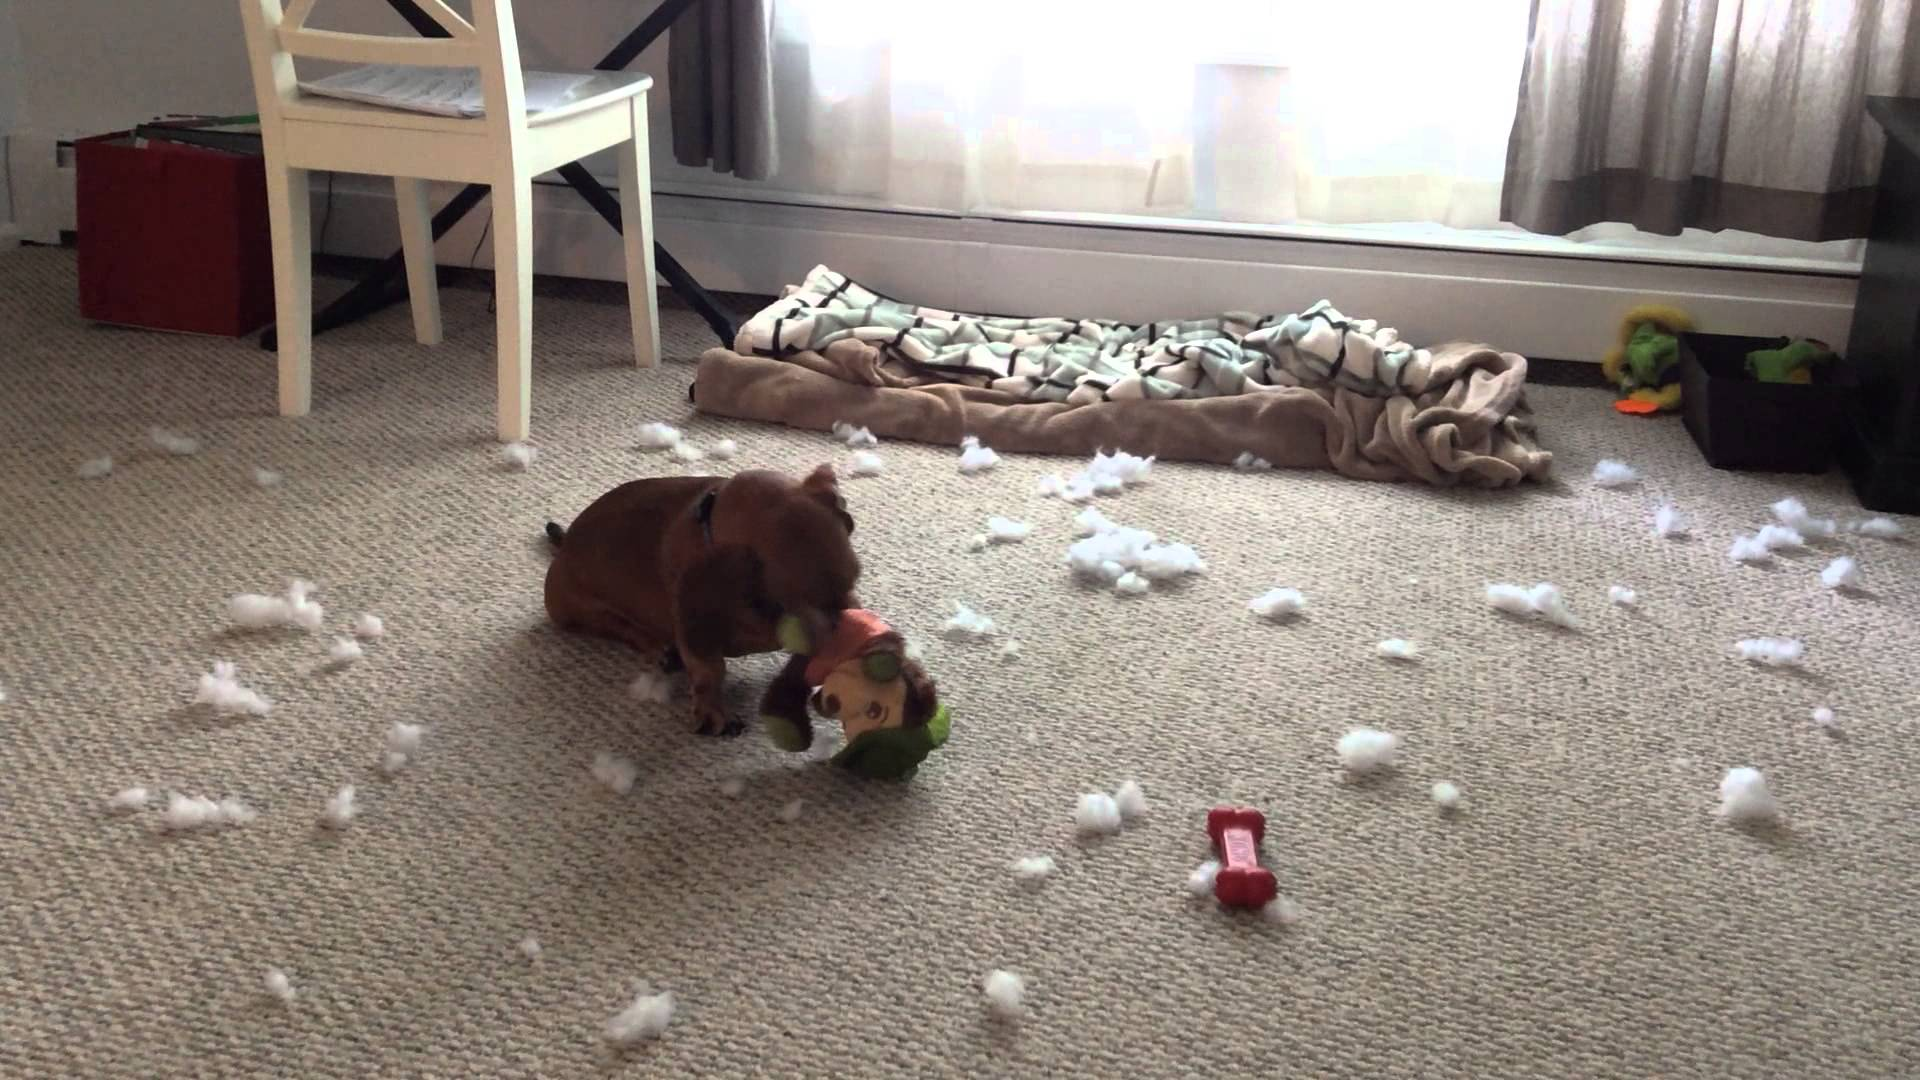 If You Leave A Naughty Dachshund Home All Alone, Be Prepared For This To Happen!